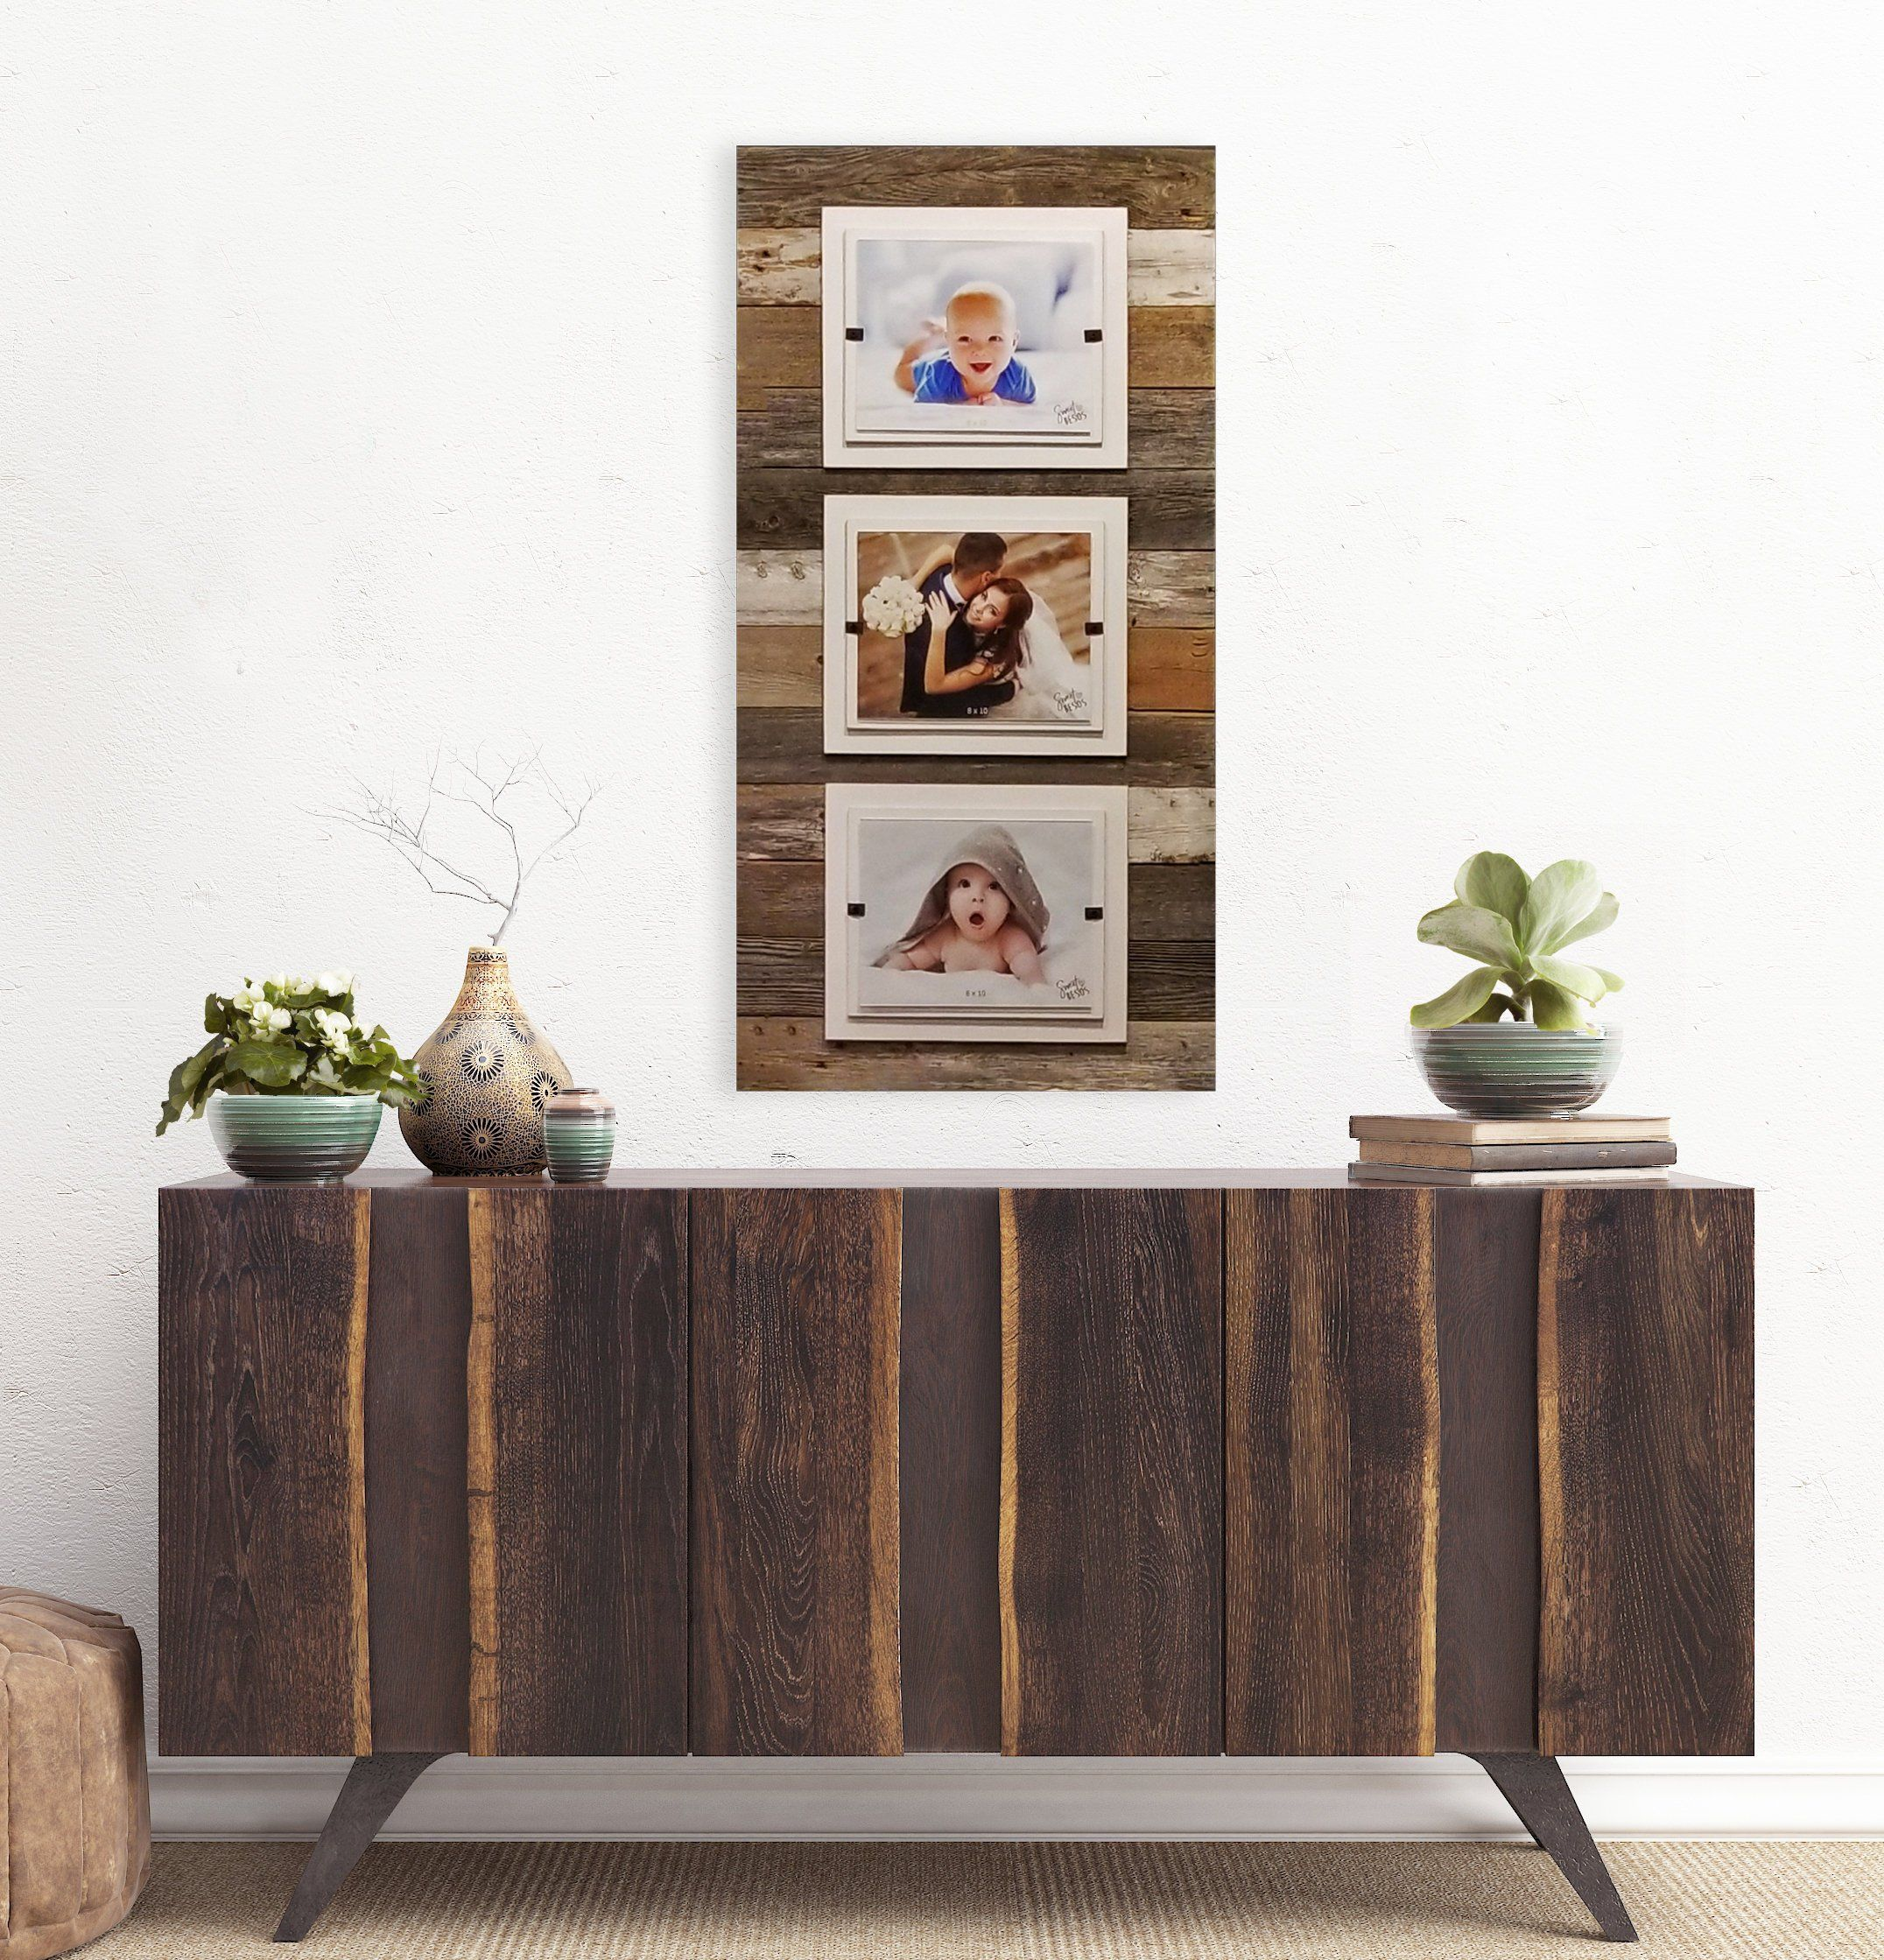 Extra Large Rustic Home Decor Triple 8 X 10 Picture Frame Reclaimed Wood Picture Frame Coastal Nautical Collage Frame Beach Frame Reclaimed Wood Picture Frames Rustic Reclaimed Wood Picture On Wood